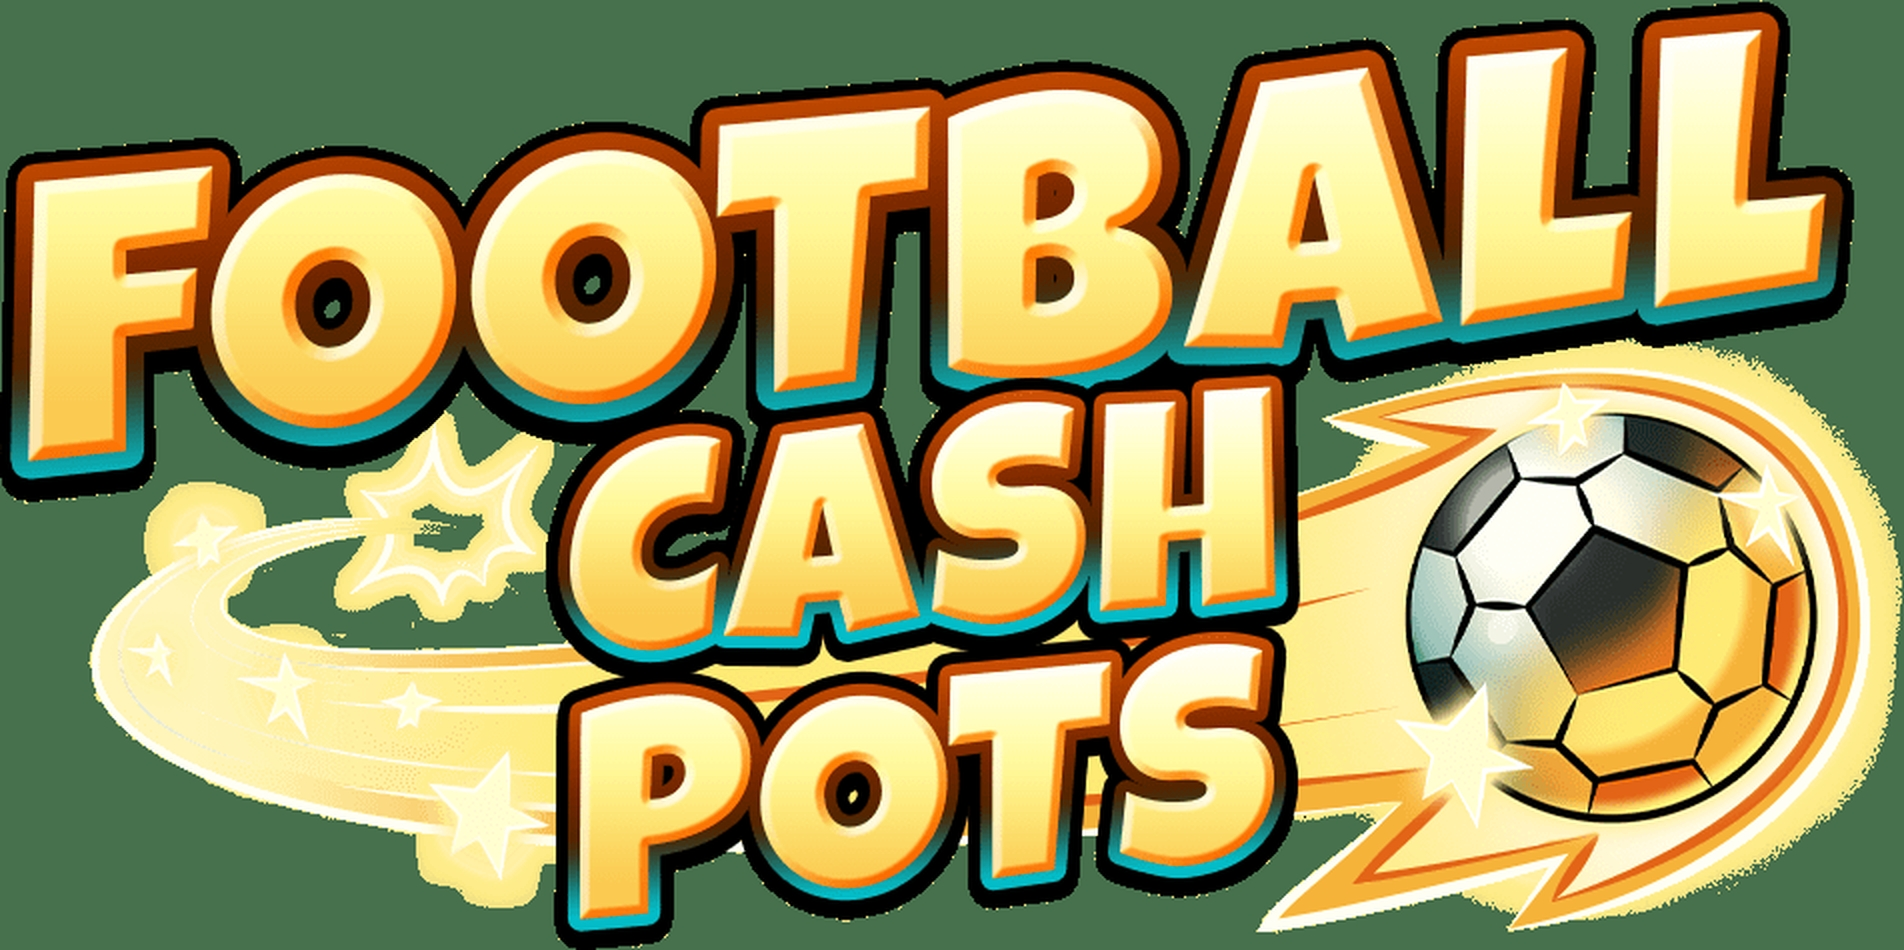 The Football Cash Pots Online Slot Demo Game by Inspired Gaming